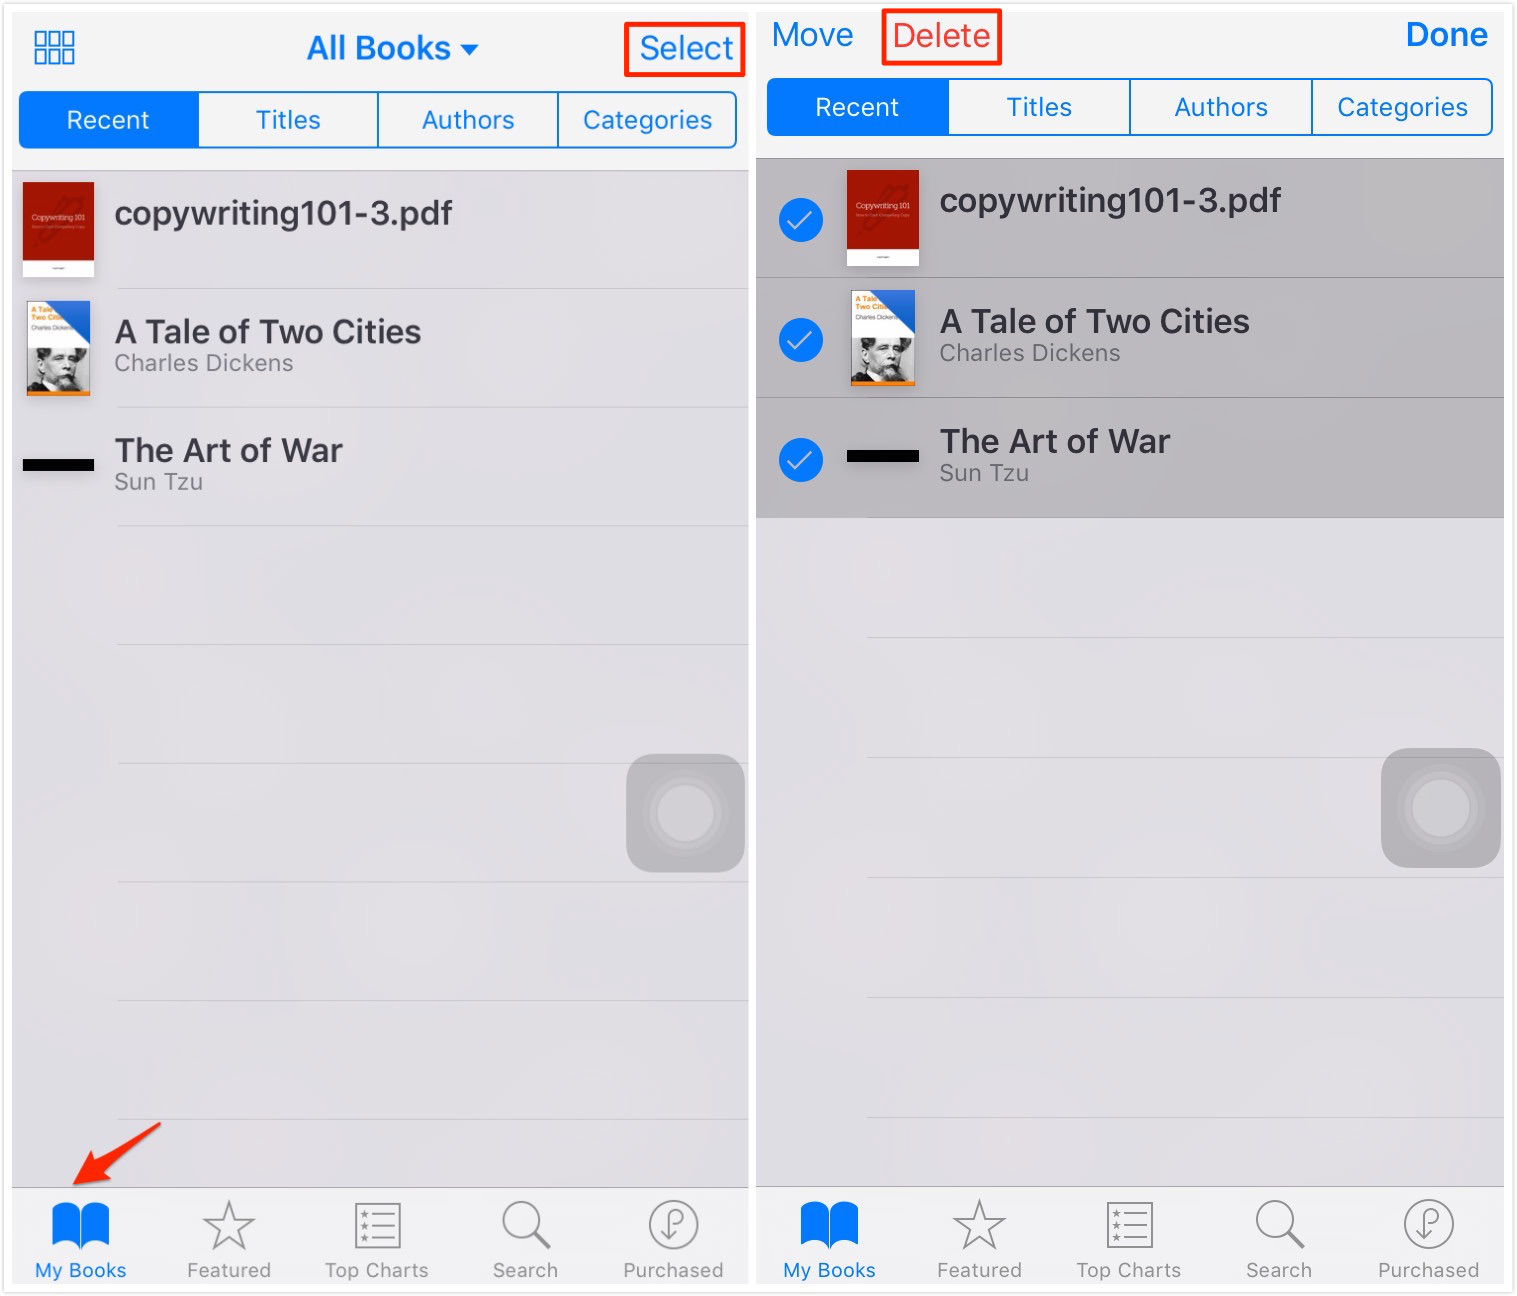 How Remove Books from iPhone in iBooks